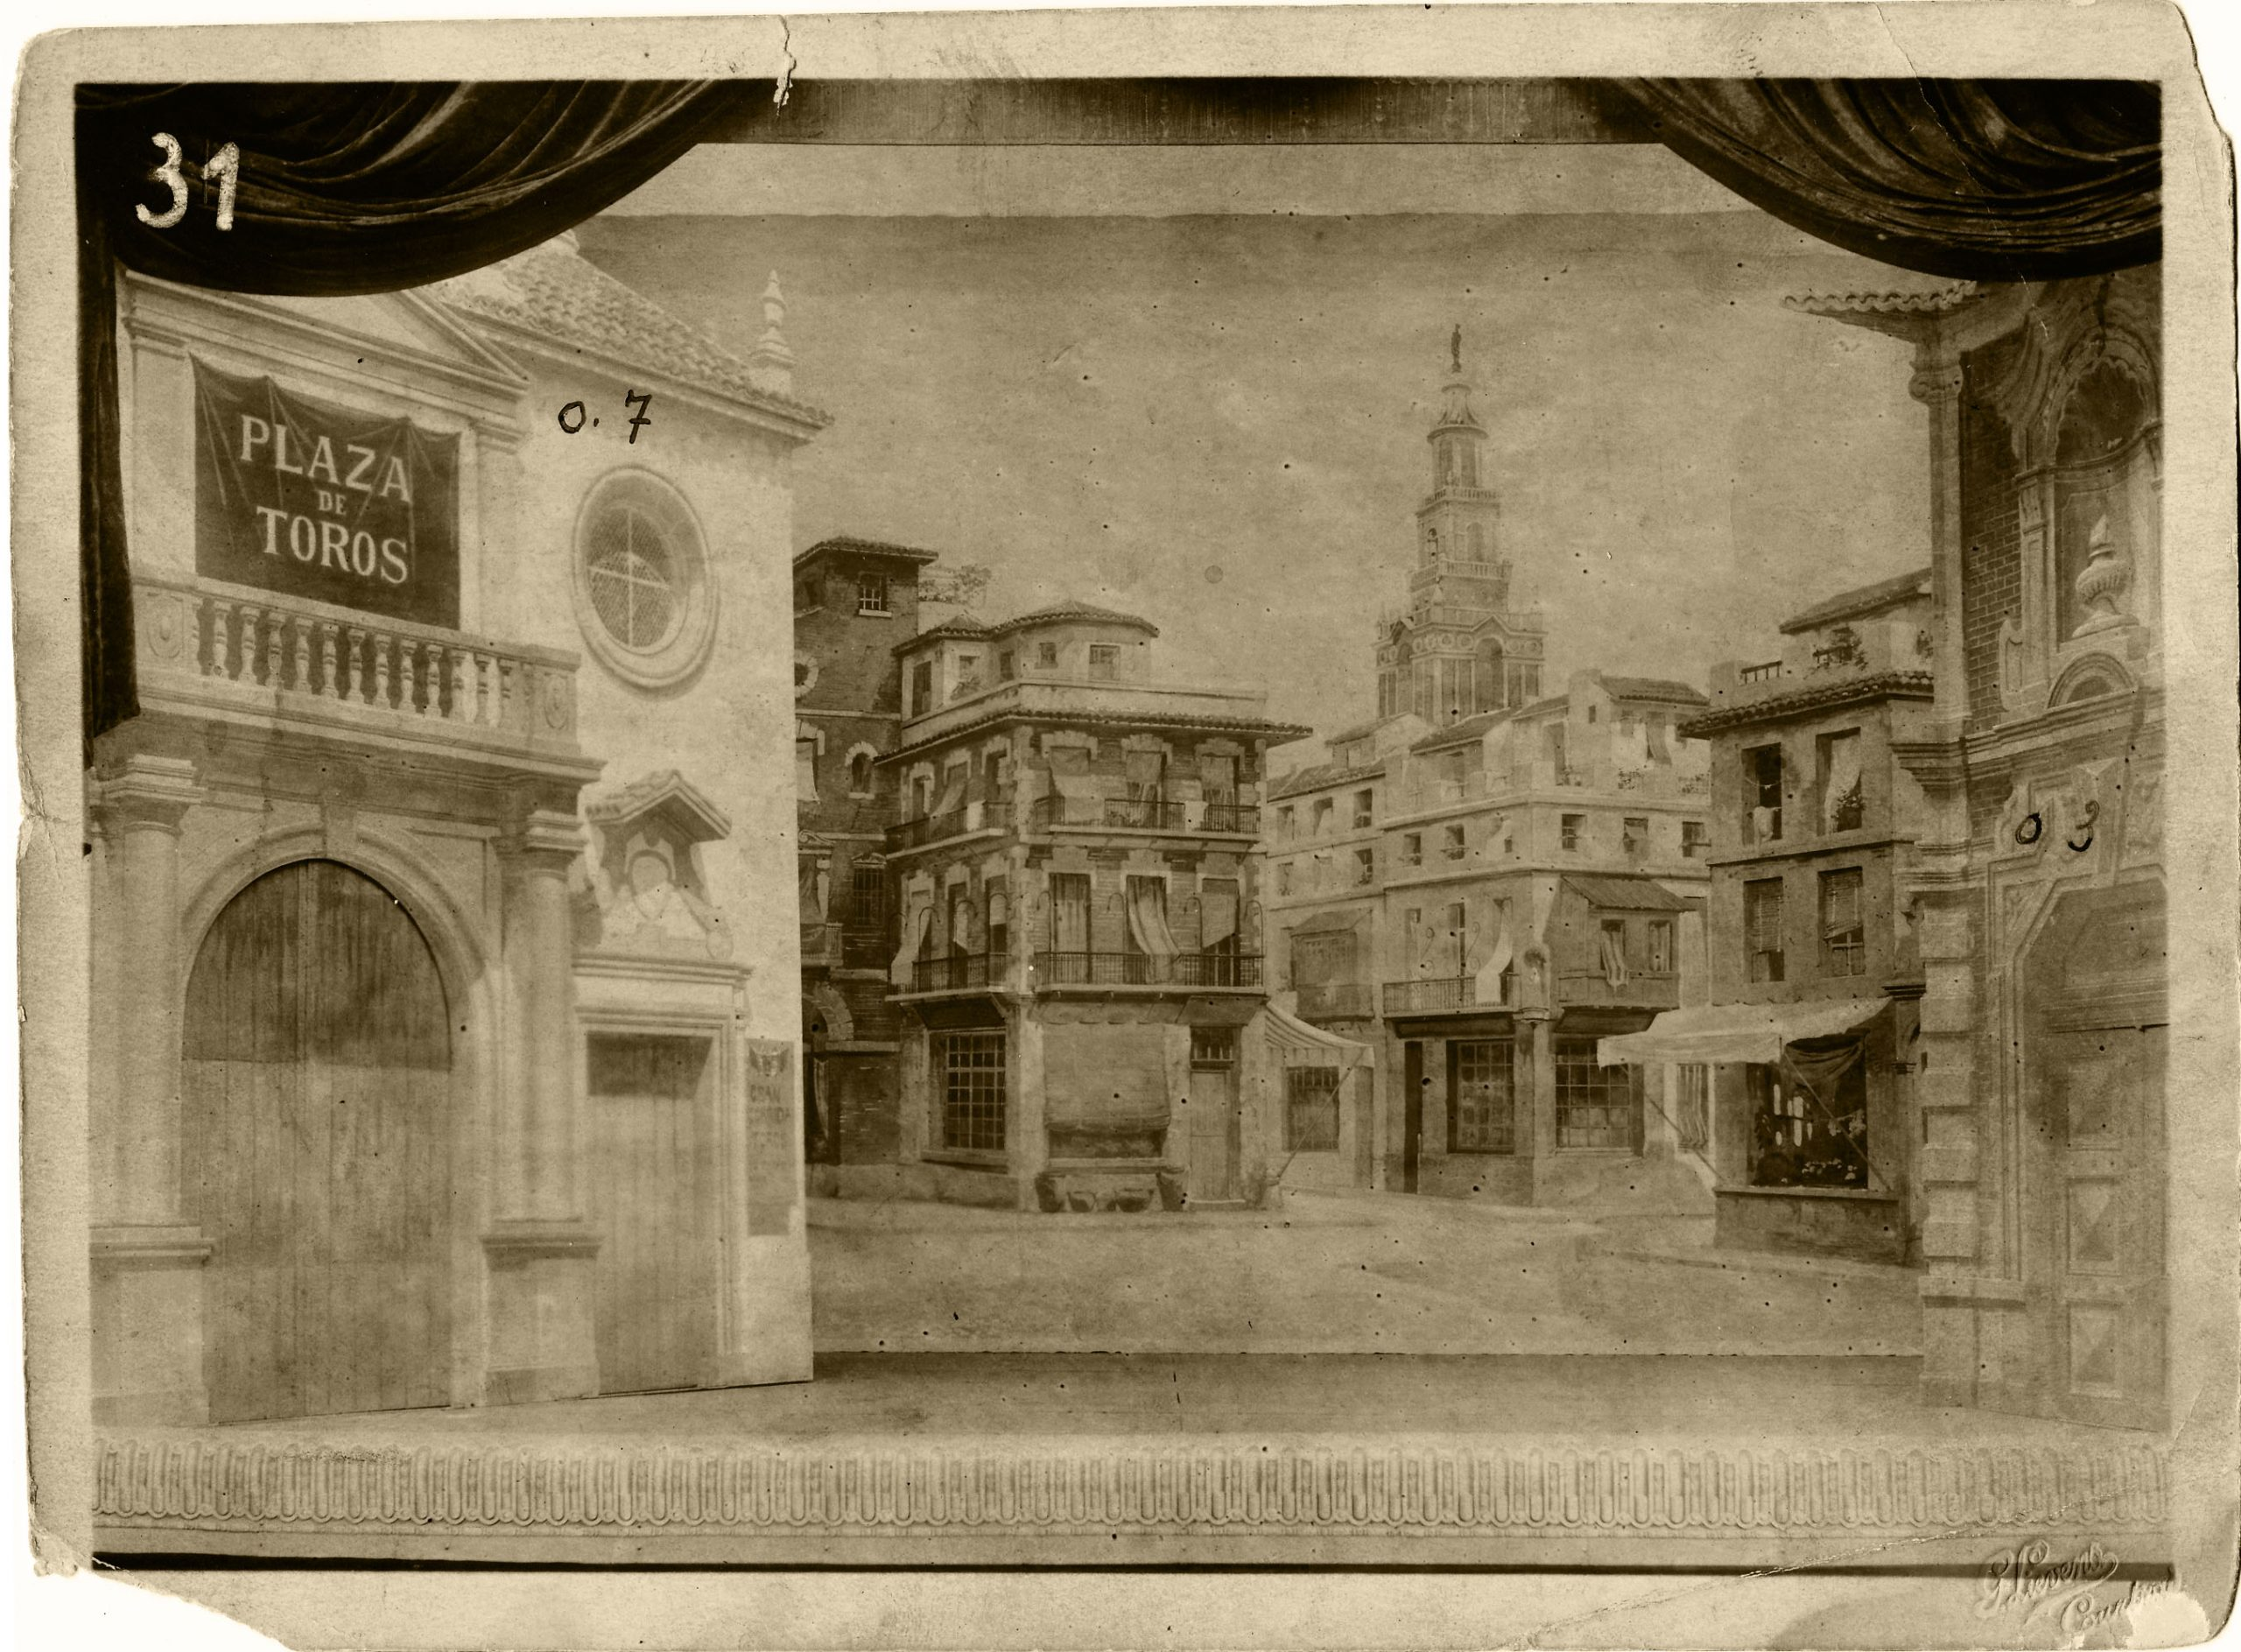 Scenery, Acts I and IV (3), Stadsschouwburg / Théâtre communal, Courtray, 1921